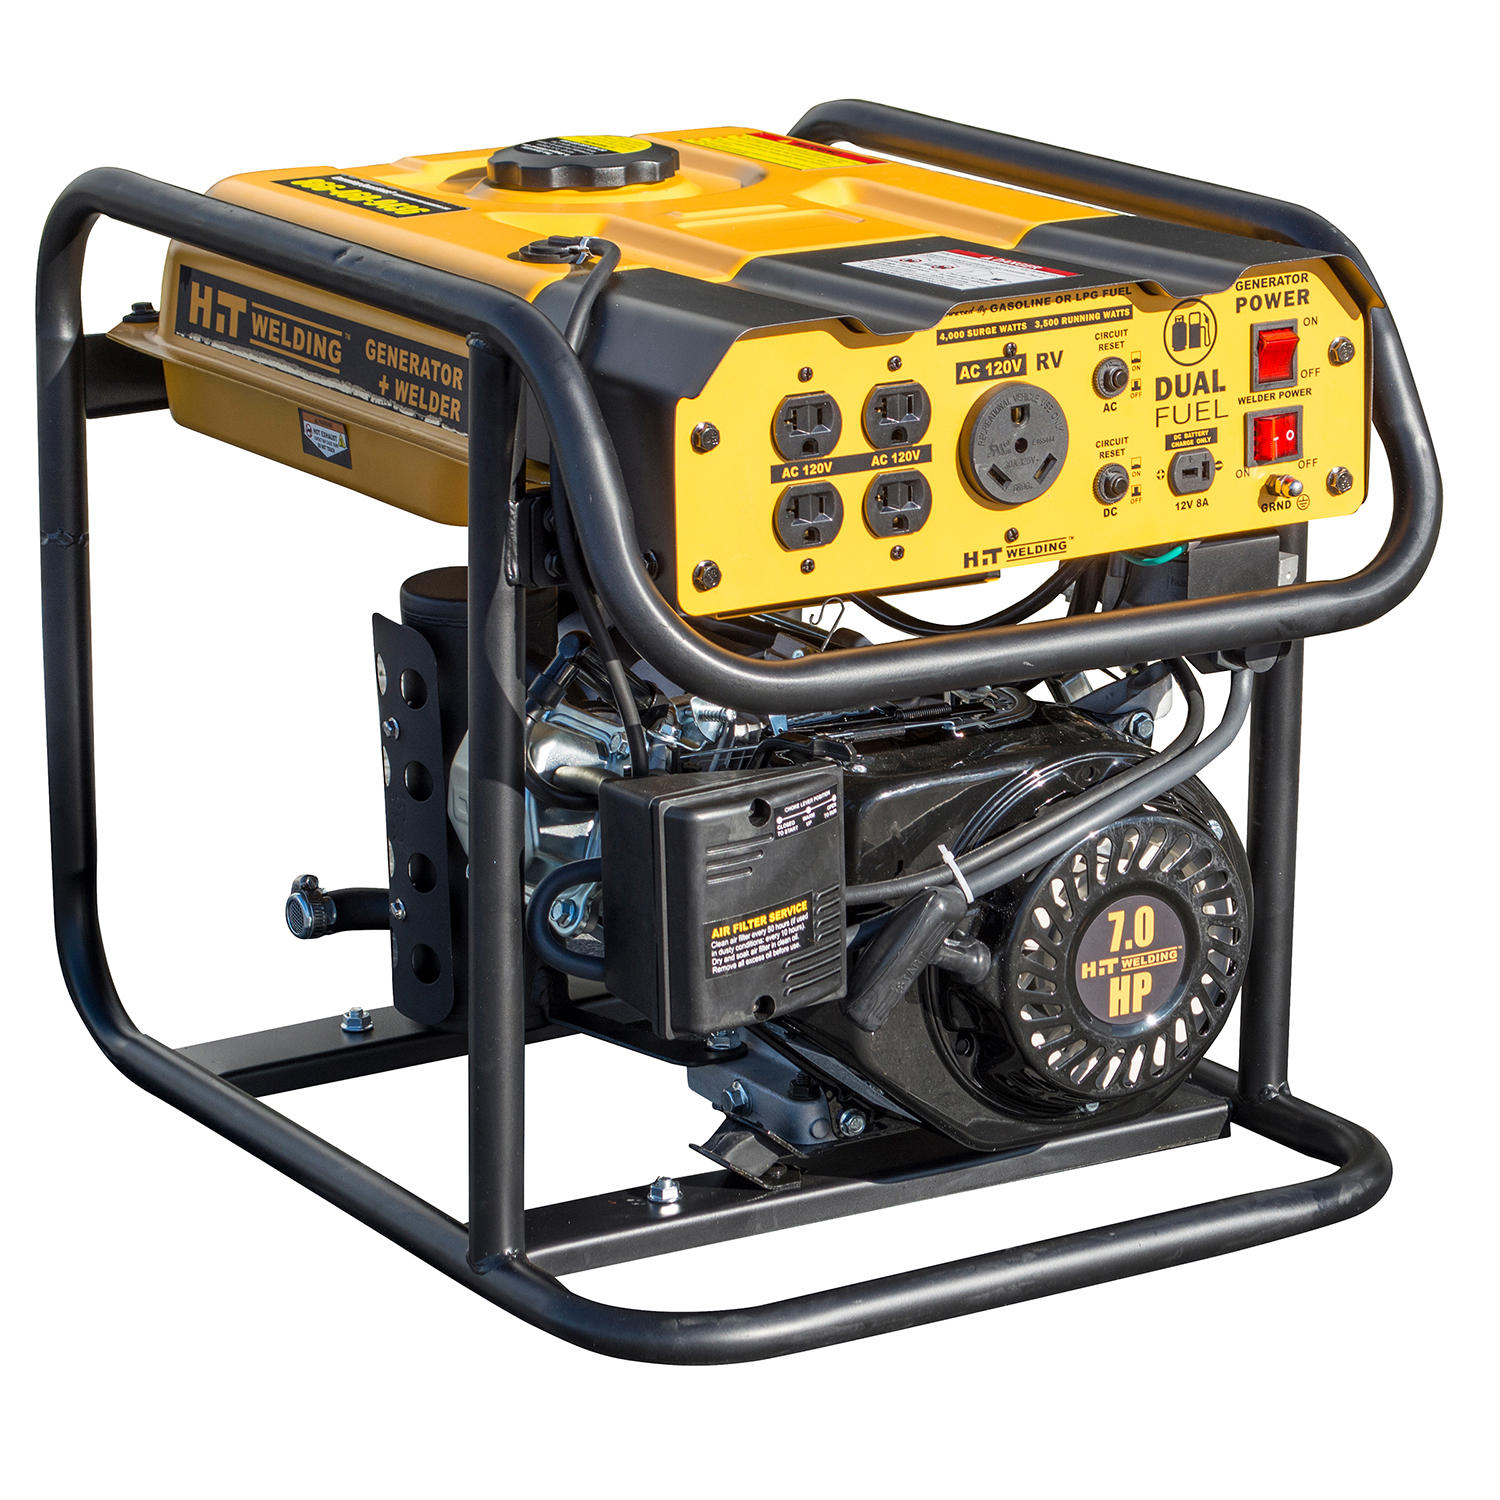 HIT GEN4000DF-STW 4000 Watt Dual Fuel Portable Generator w/Stick Welder